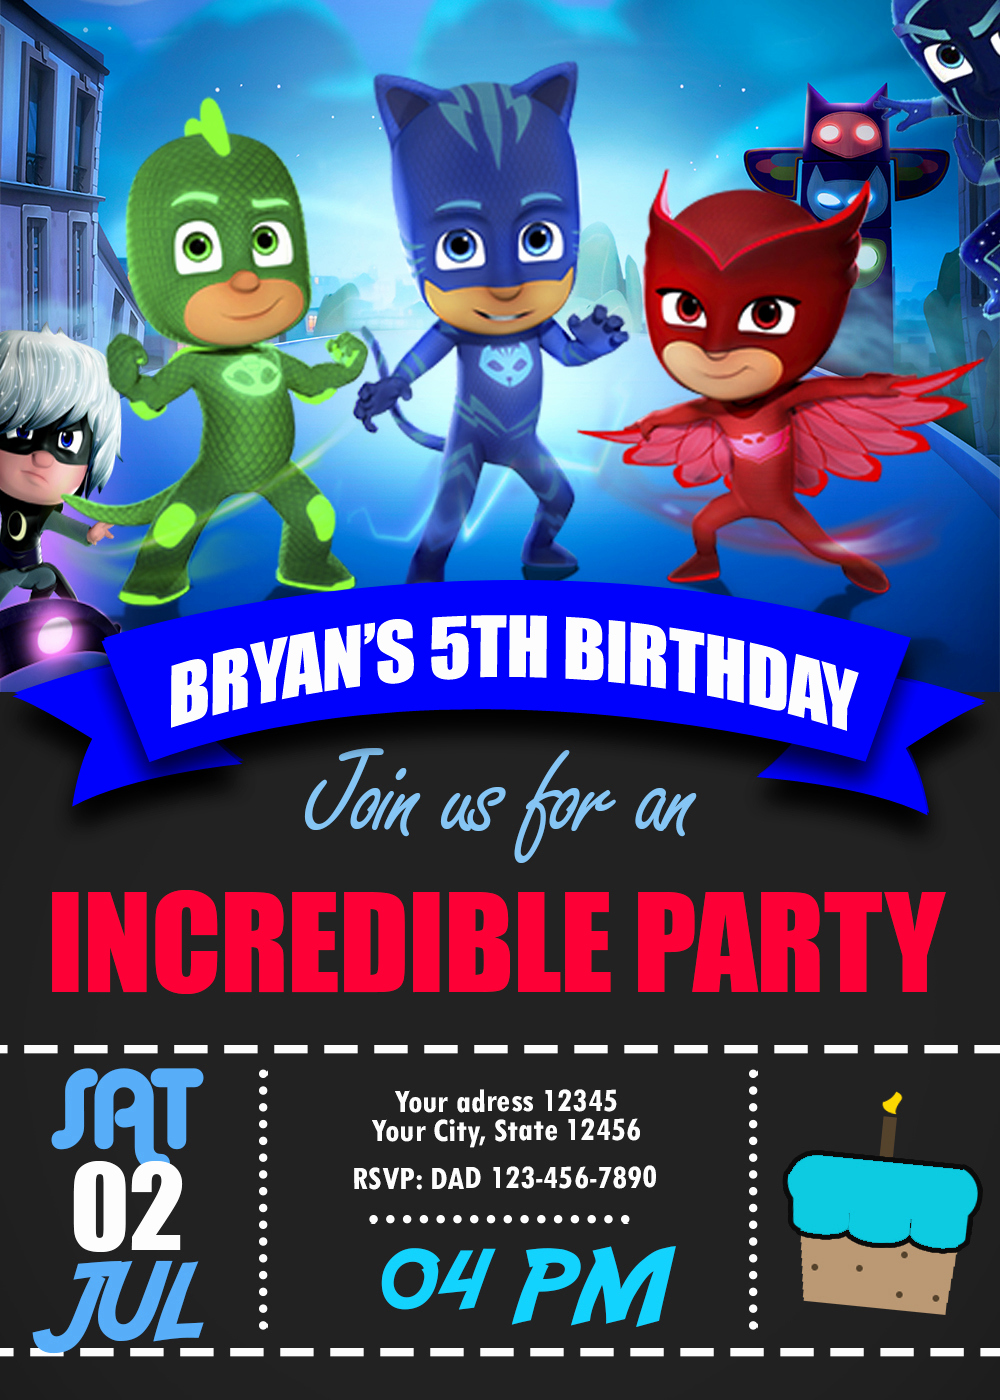 Pj Masks Invitation Template Awesome Blue Catboy Pj Masks Birthday Invitation Oscarsitosroom